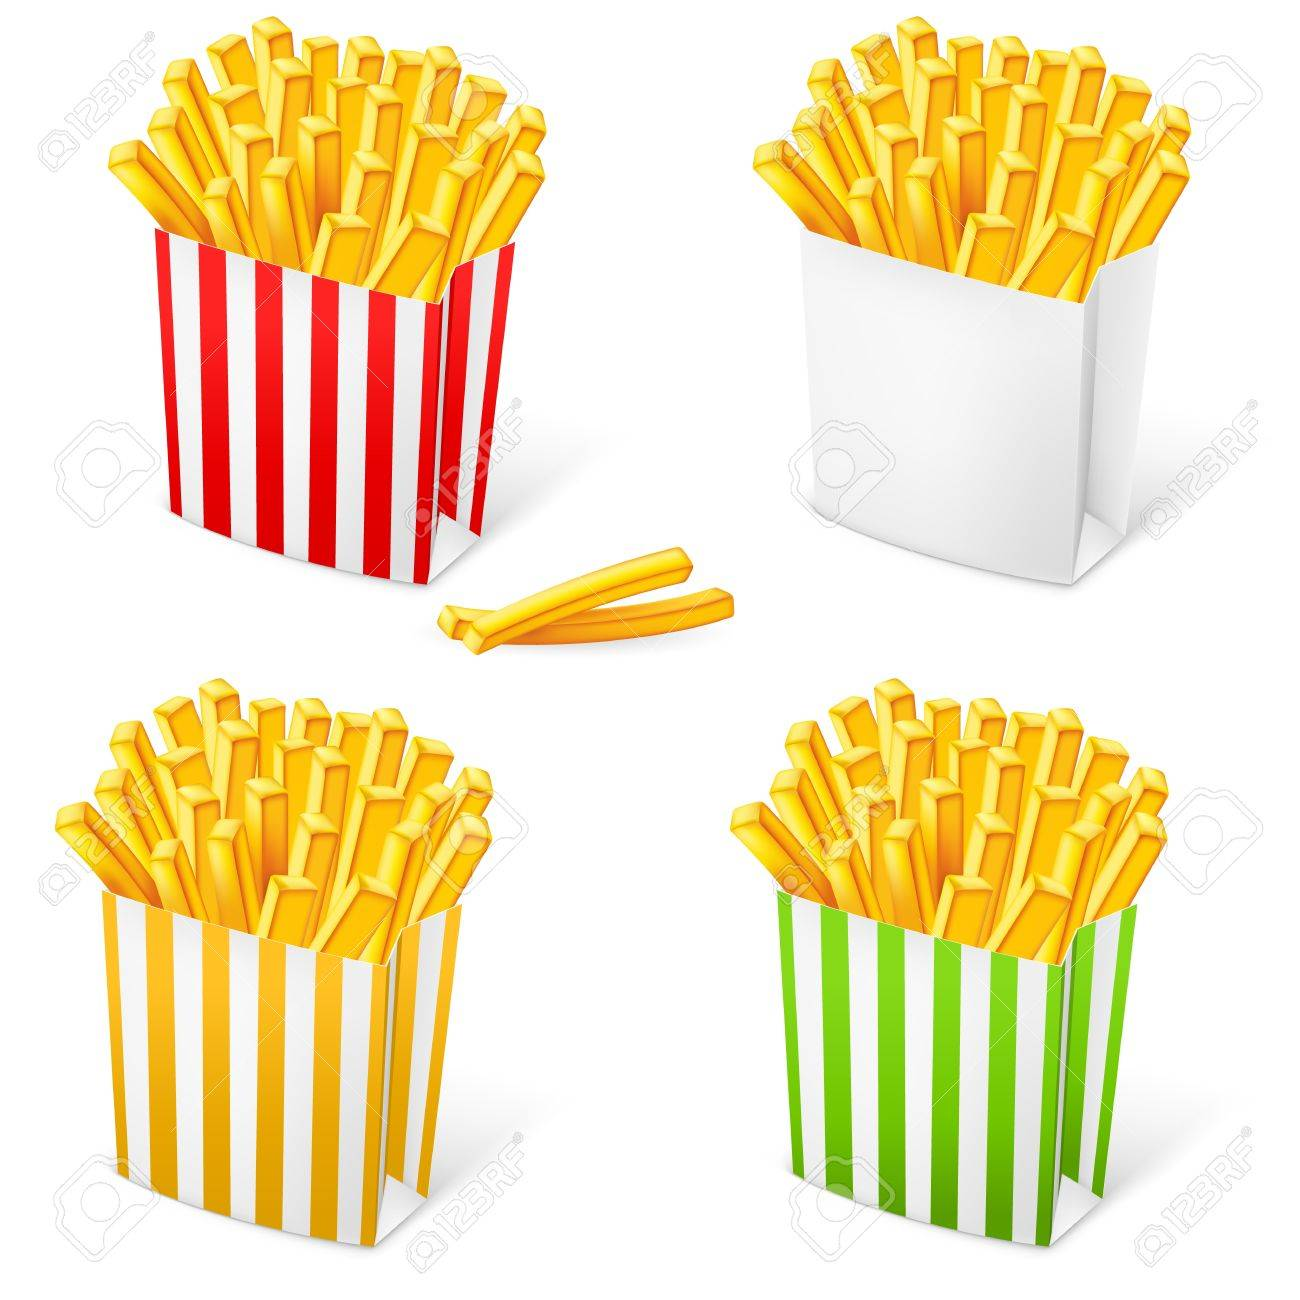 French fries in a multi-colored striped packaging. Illustration on white background Stock Vector - 13082638